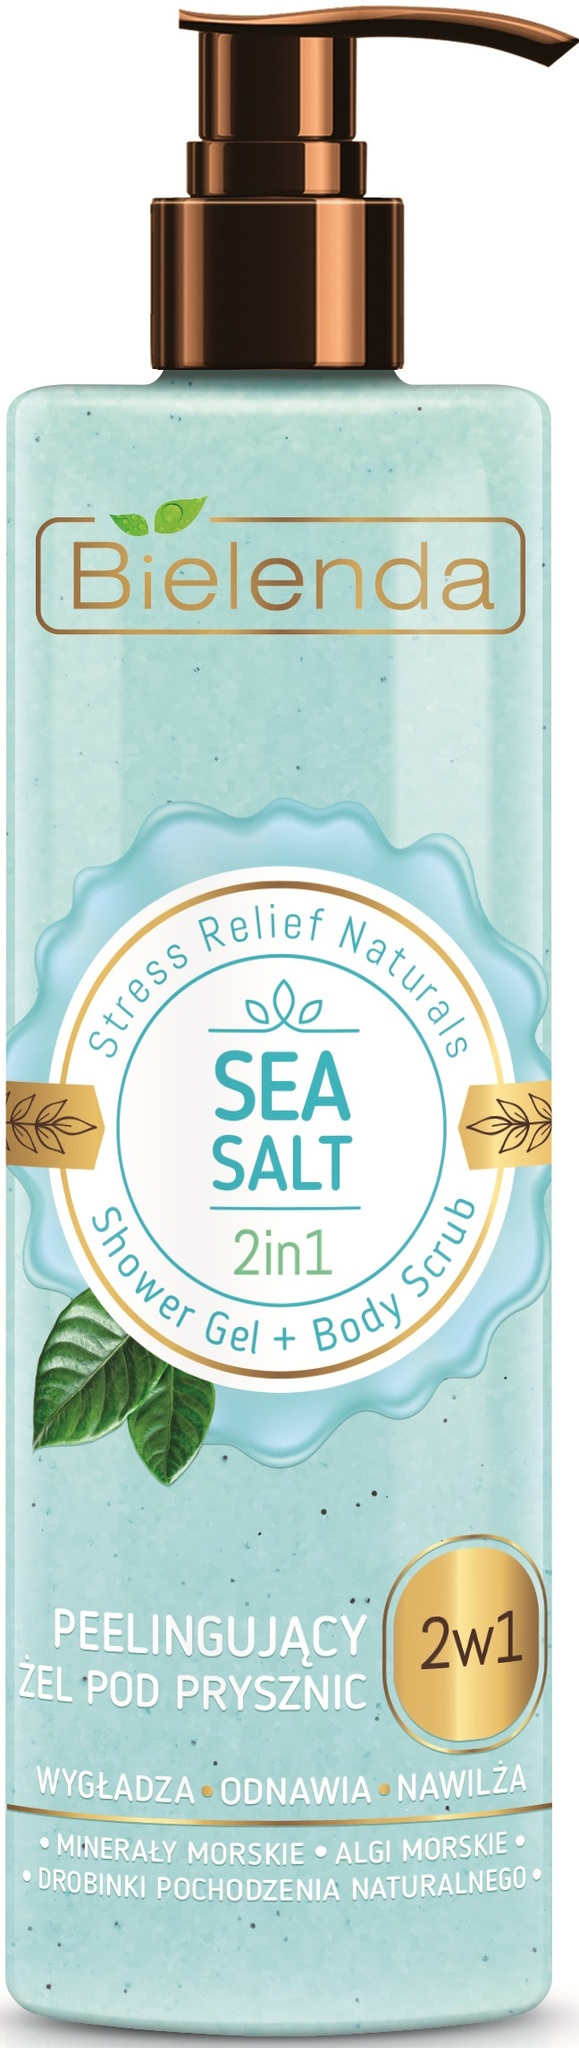 STRESS RELIEF NATURALS Sea Salt 2в1 гель для душа+скраб 410г